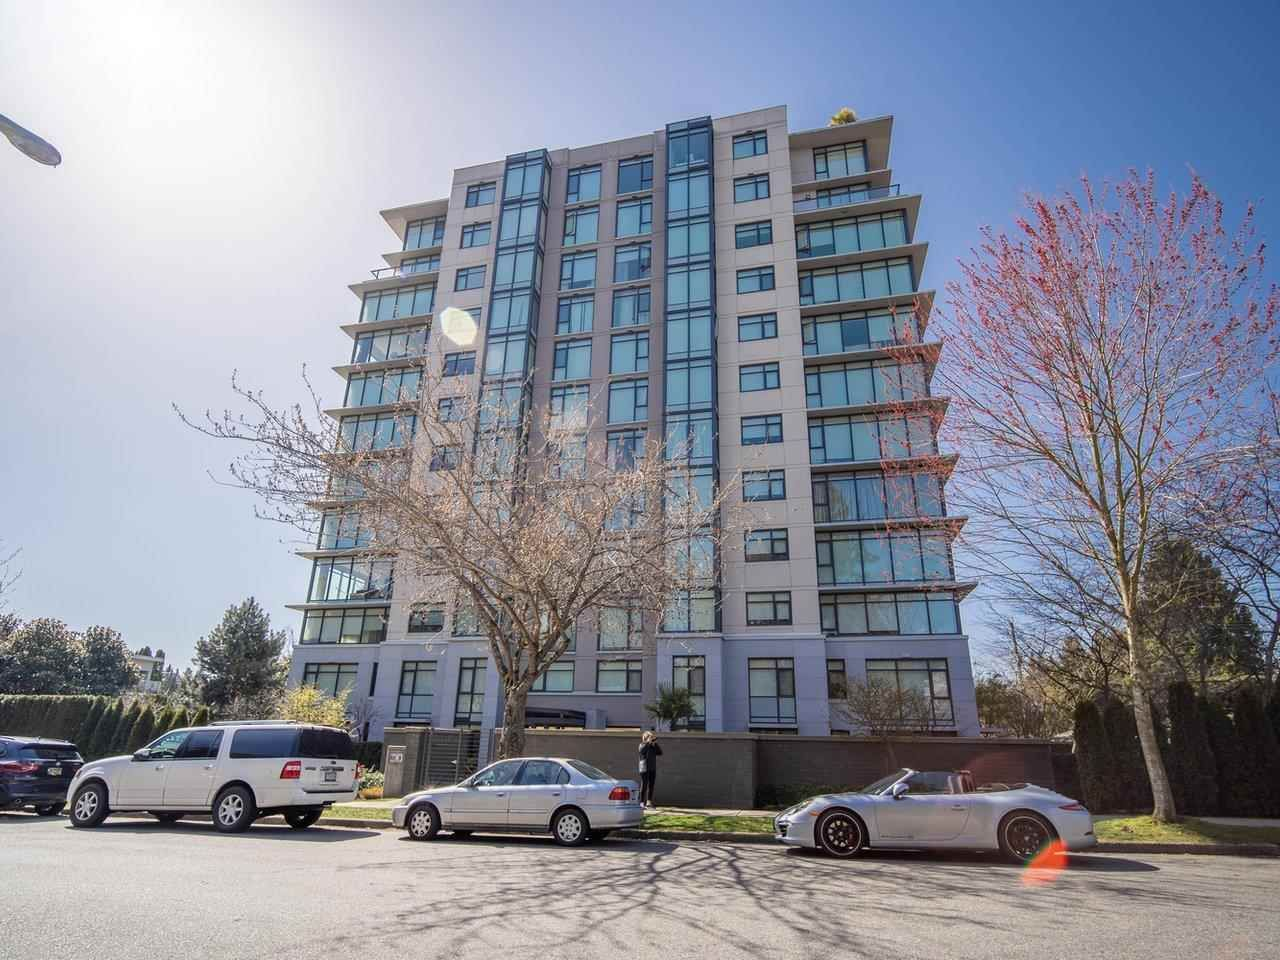 Main Photo: 503 5955 BALSAM Street in Vancouver: Kerrisdale Condo for sale (Vancouver West)  : MLS®# R2586976